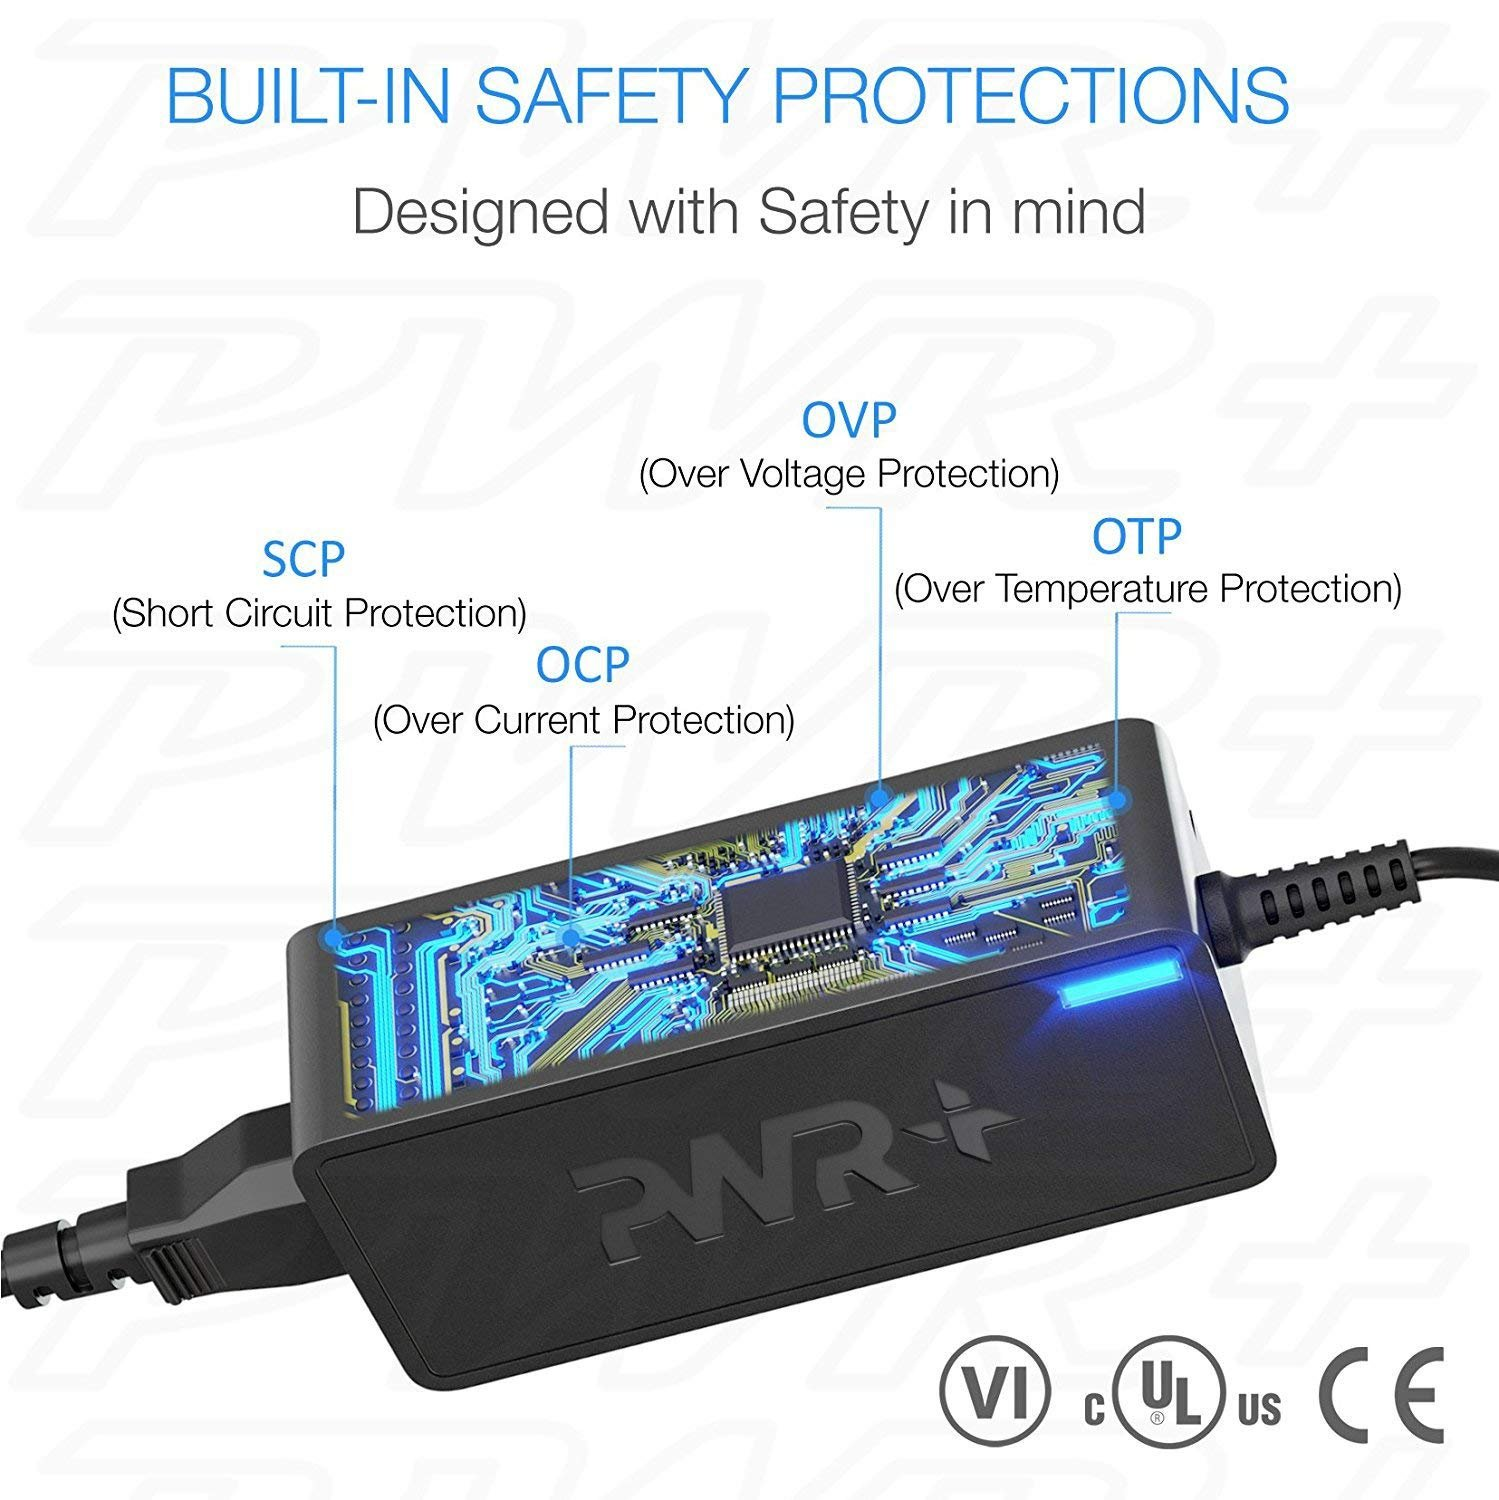 Pwr Ul Listed Charger For Hp Probook 4430s 4440s 4520s Pavilion Ze4900 Laptop Schematic Diagram 4530s 4535s 4540s 4545s 4730s 6360b 6450b 6455b 6460b 6470b 6560b 6570b 255 430 440 450